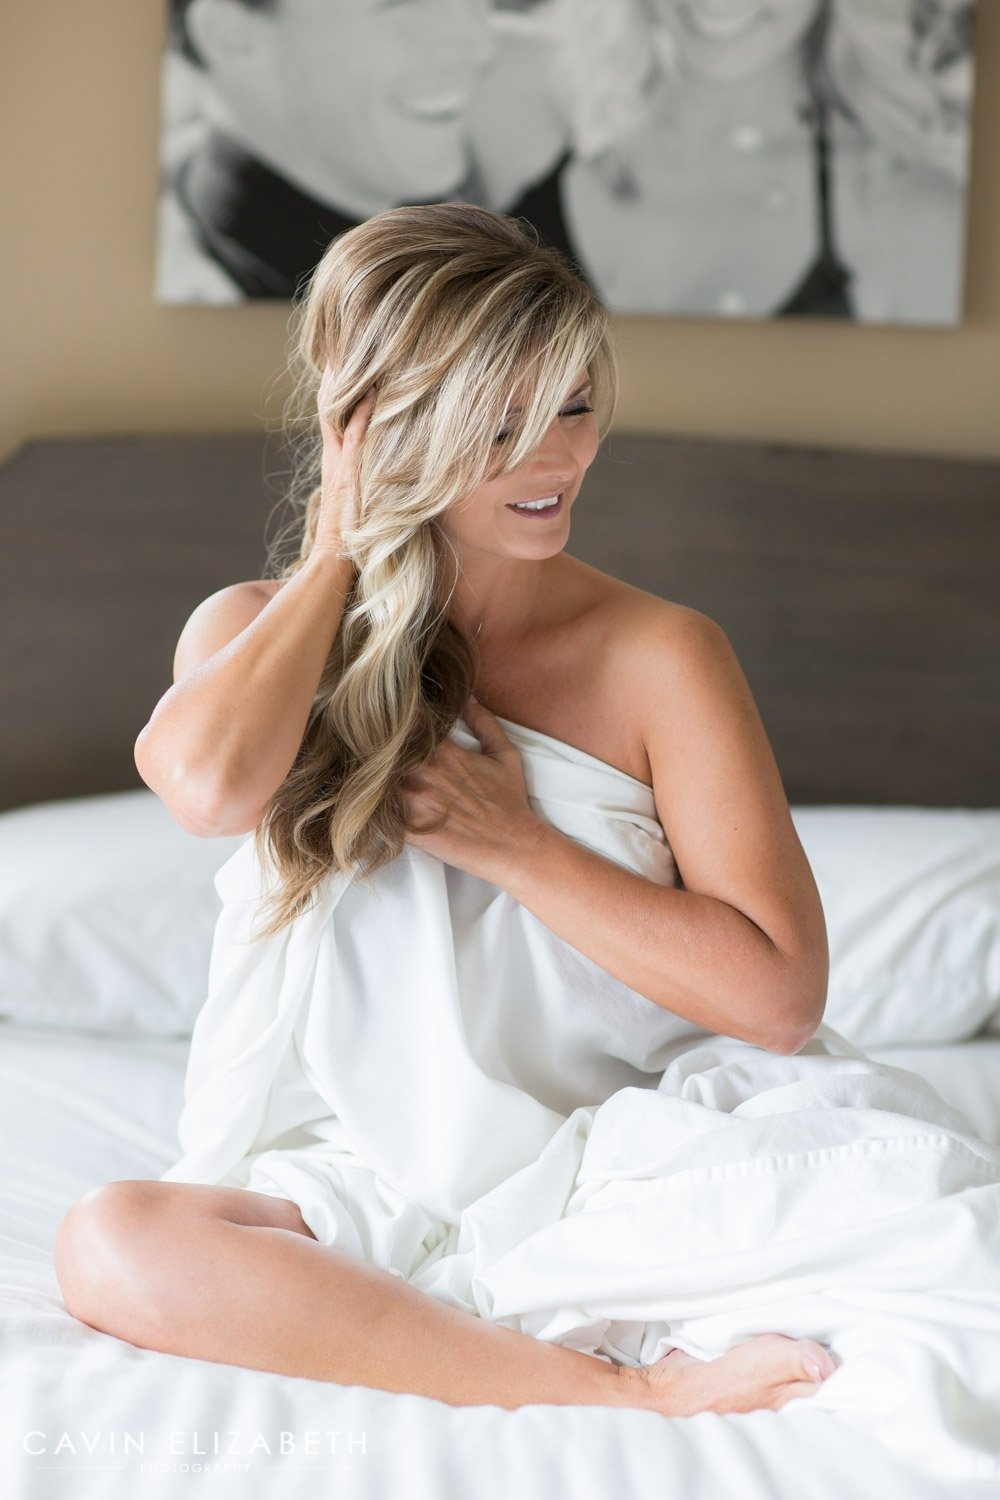 10 Perfect Boudoir Photo Ideas For Husband boudoir photography session in san diego 2021